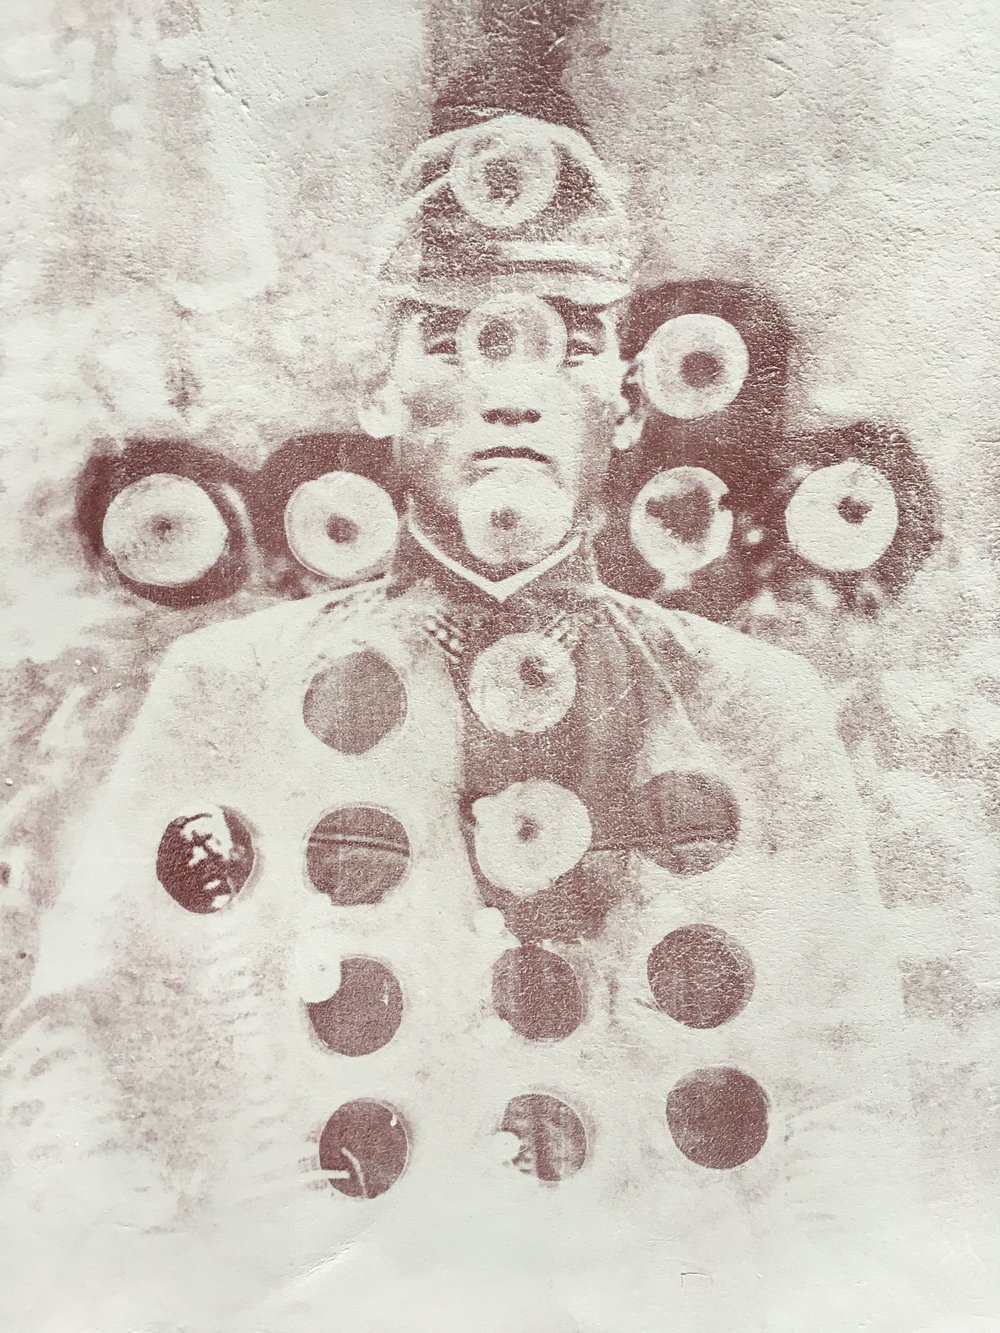 Shining Officer , 2018, 21 x 14 cm,  Oxide print on stoneware clay